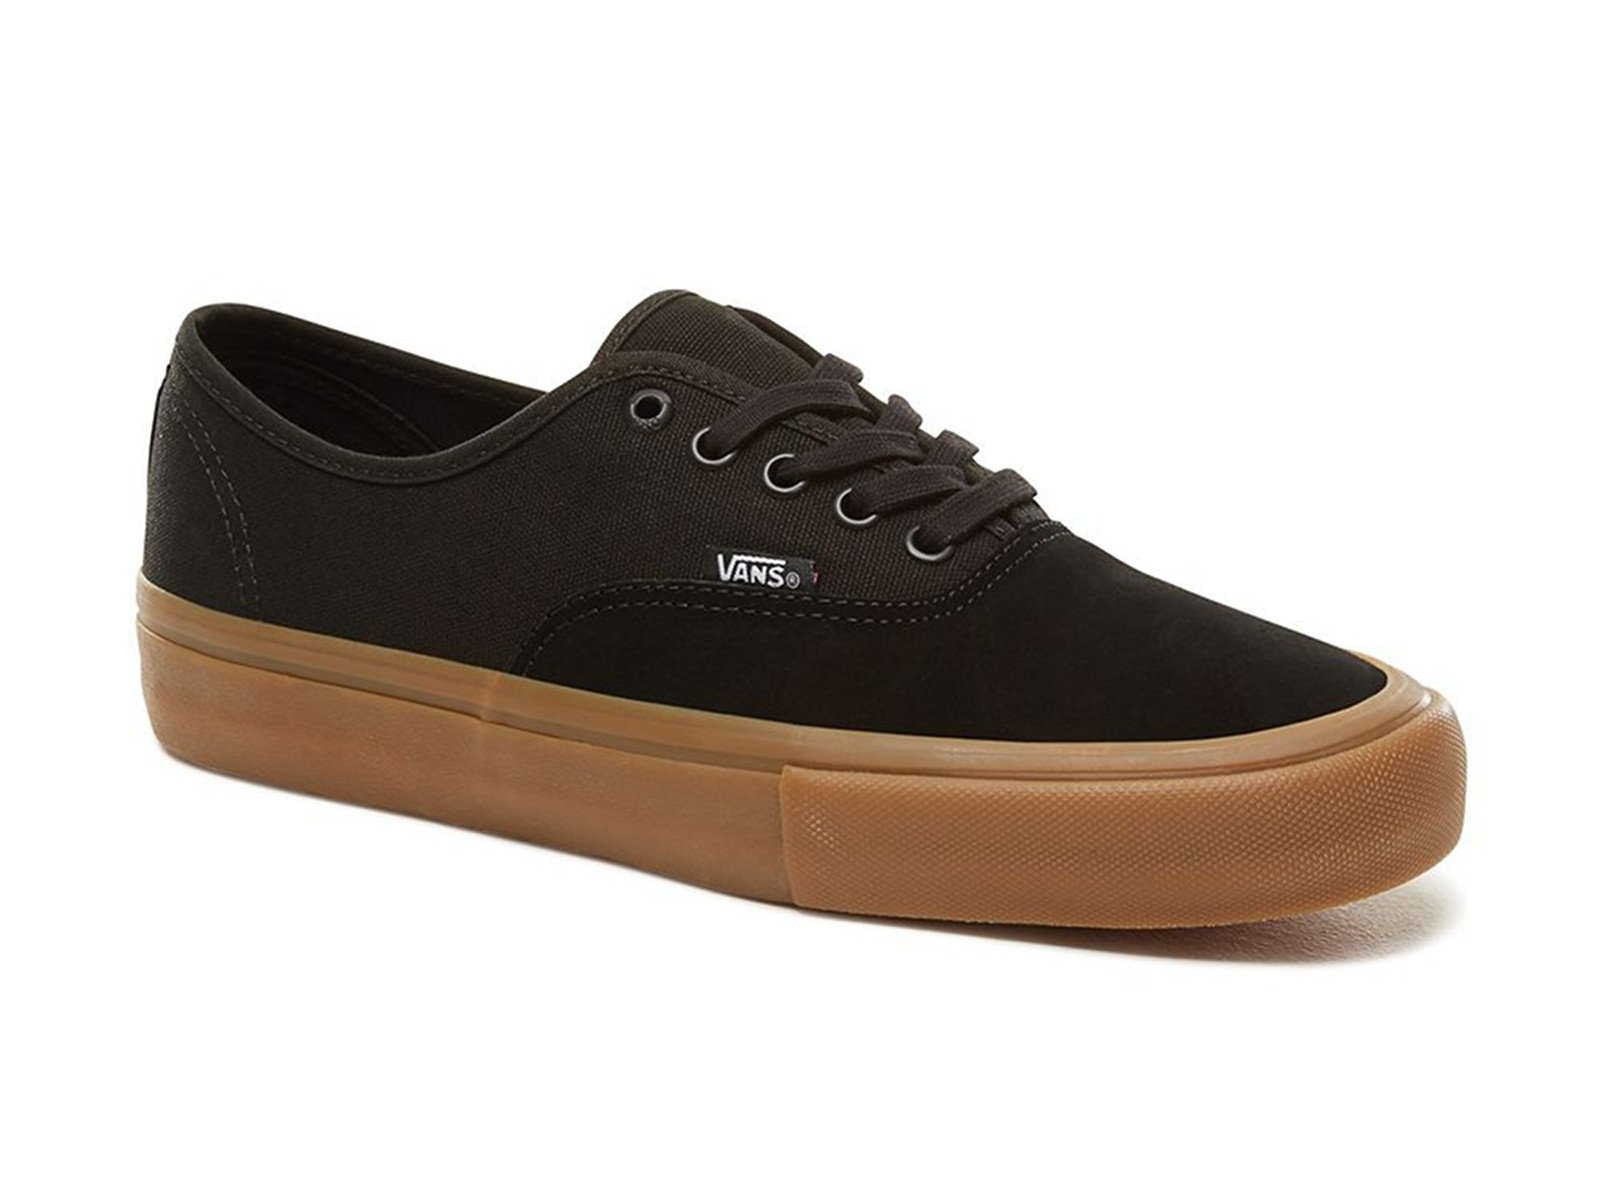 Vans Authentic Pro Shoes Black Clic Gum